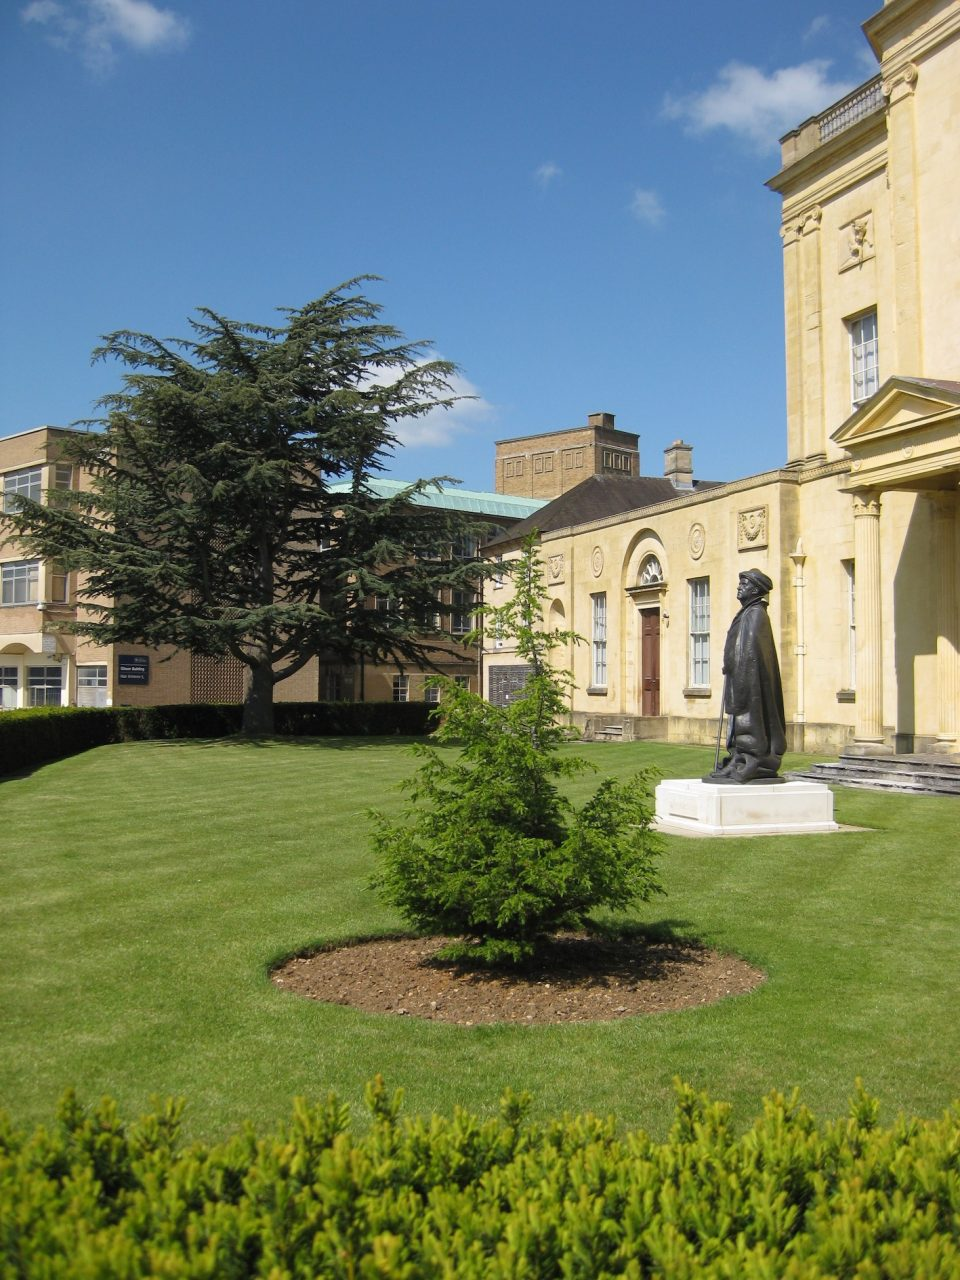 South Lawn of Radcliffe Observatory